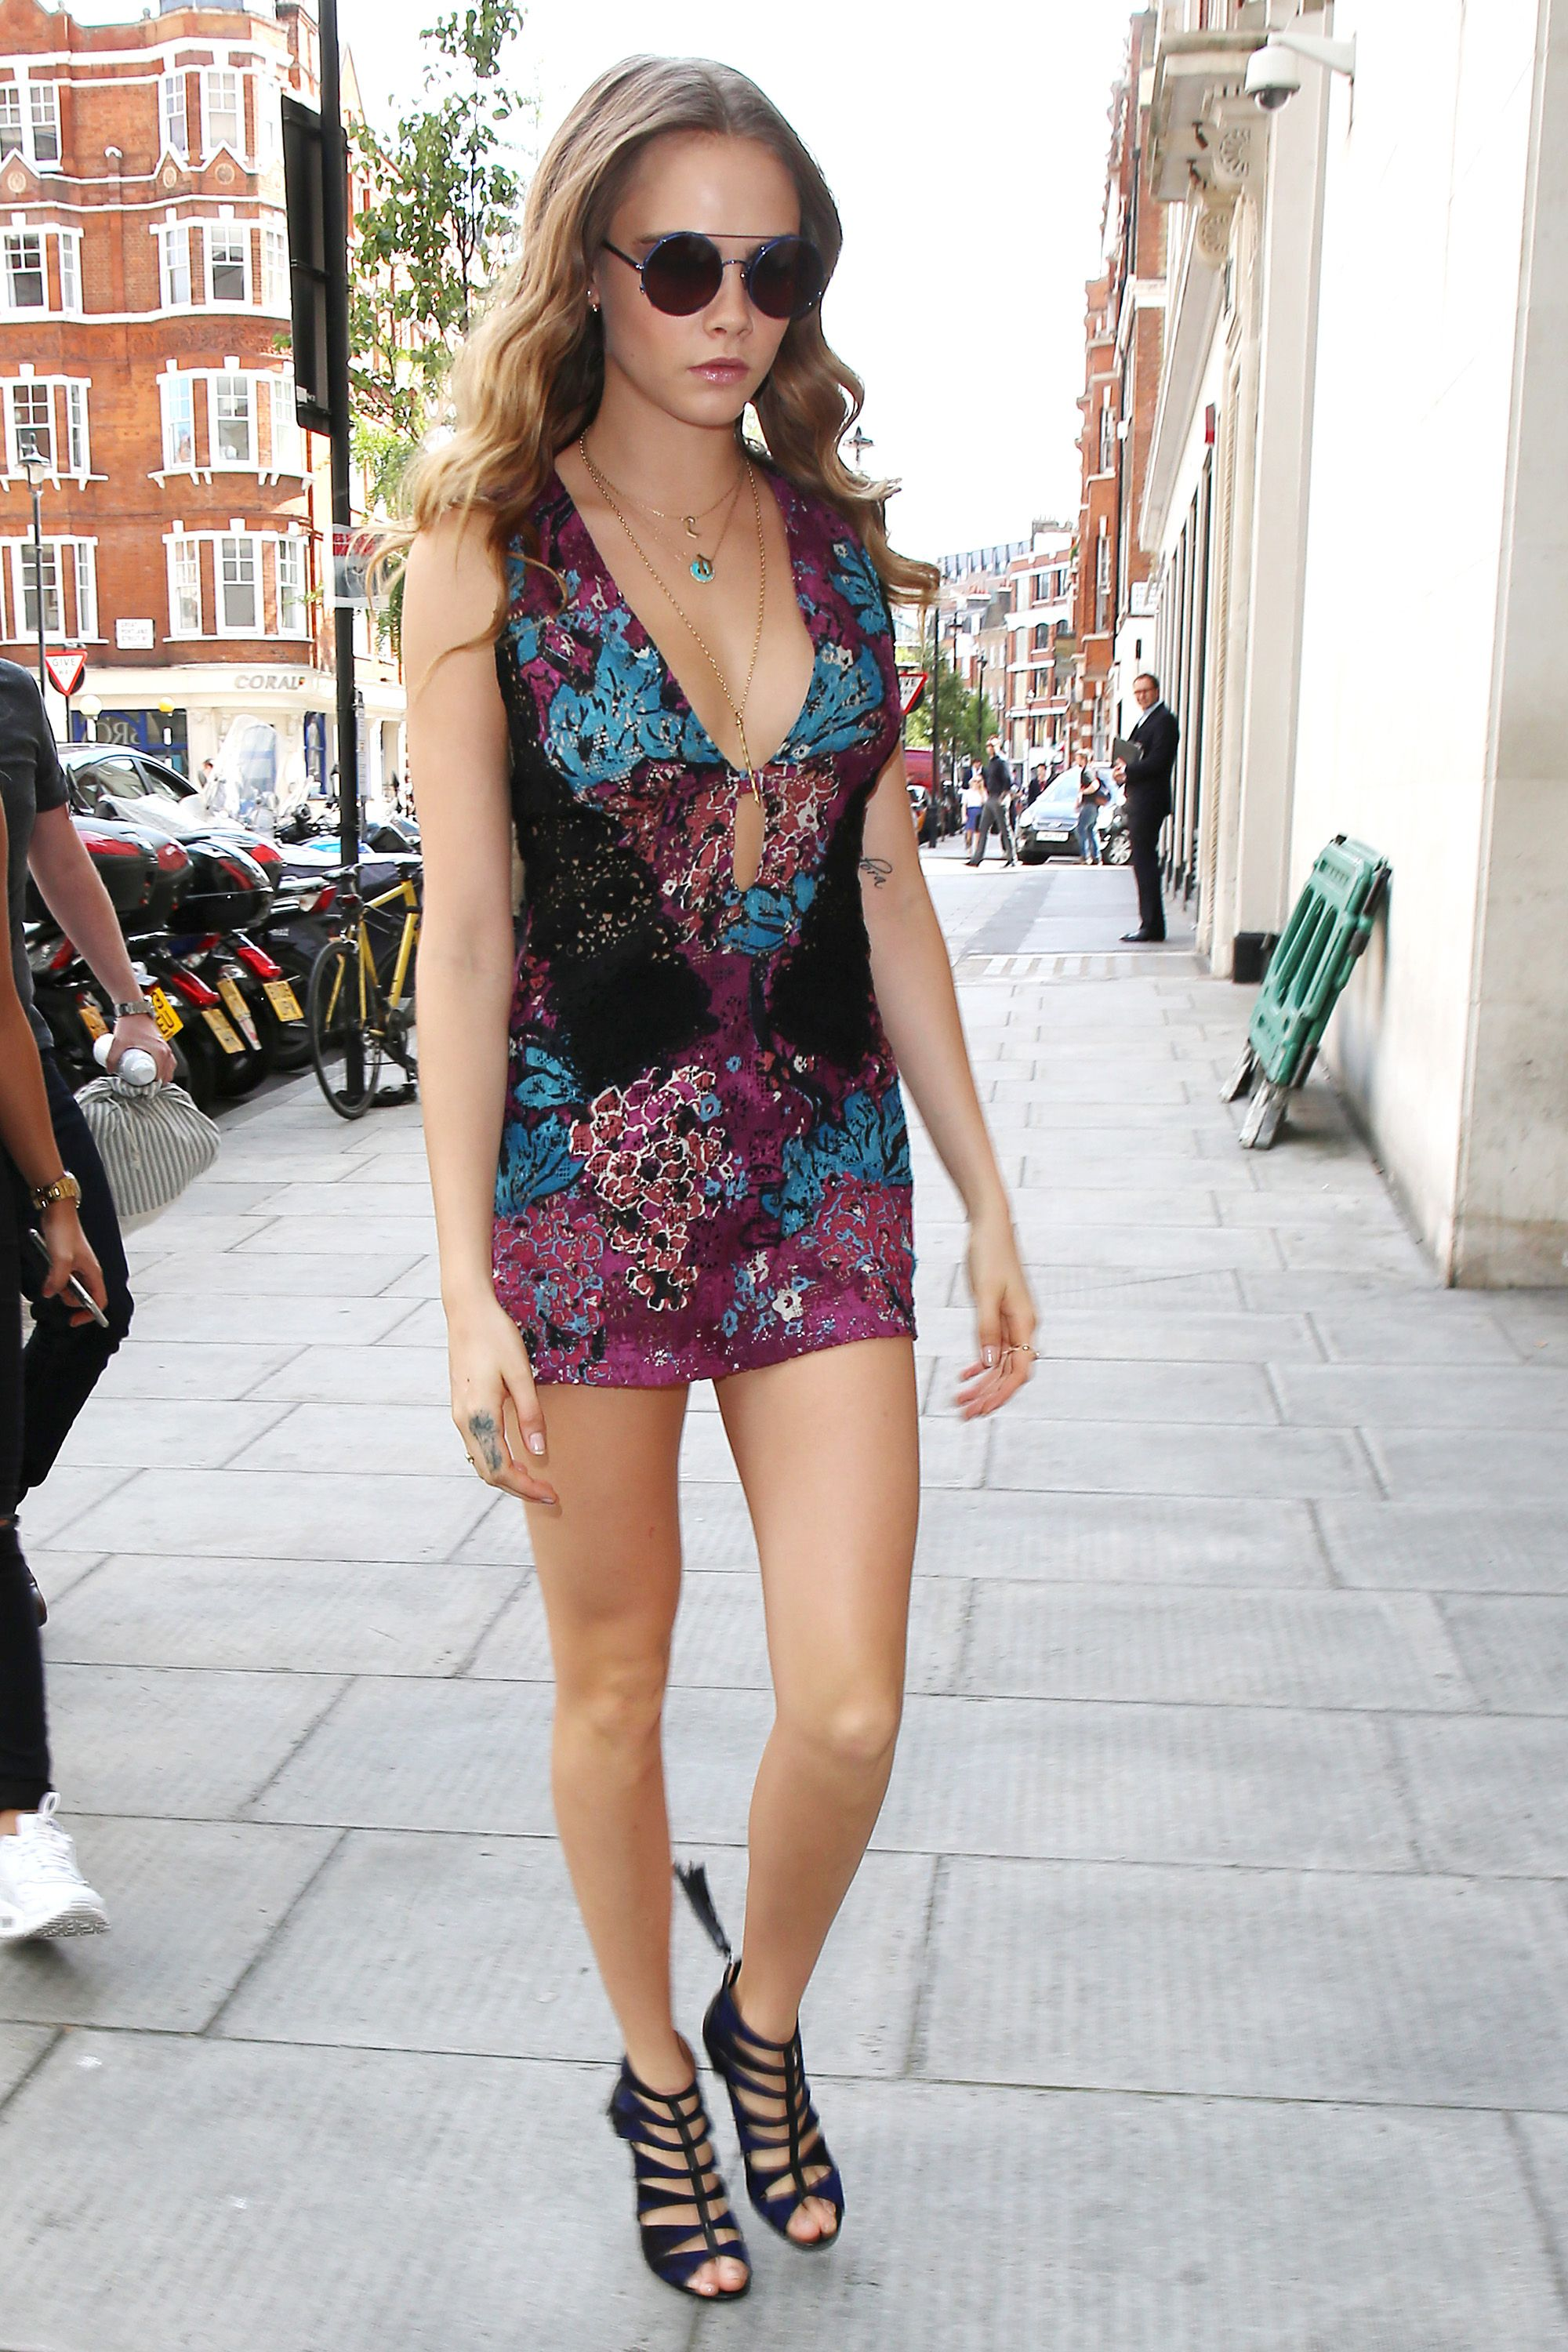 LONDON, ENGLAND - JUNE 18:  Cara Delevingne seen at BBC Radio One on June 18, 2015 in London, England.  (Photo by Neil Mockford/Alex Huckle/GC Images)